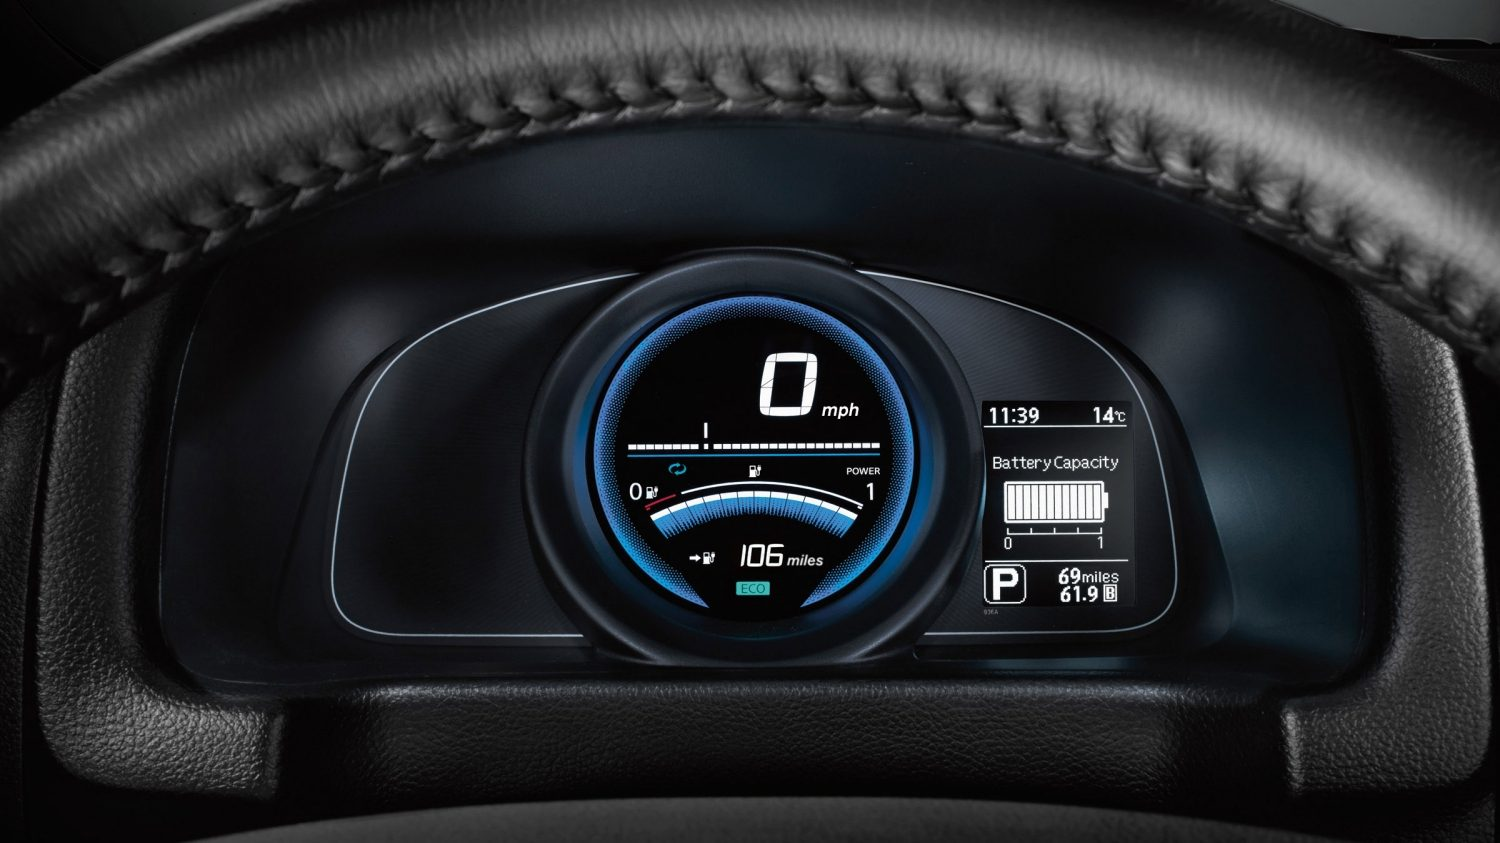 Nissan e-NV200 Evalia - Dashboard detail